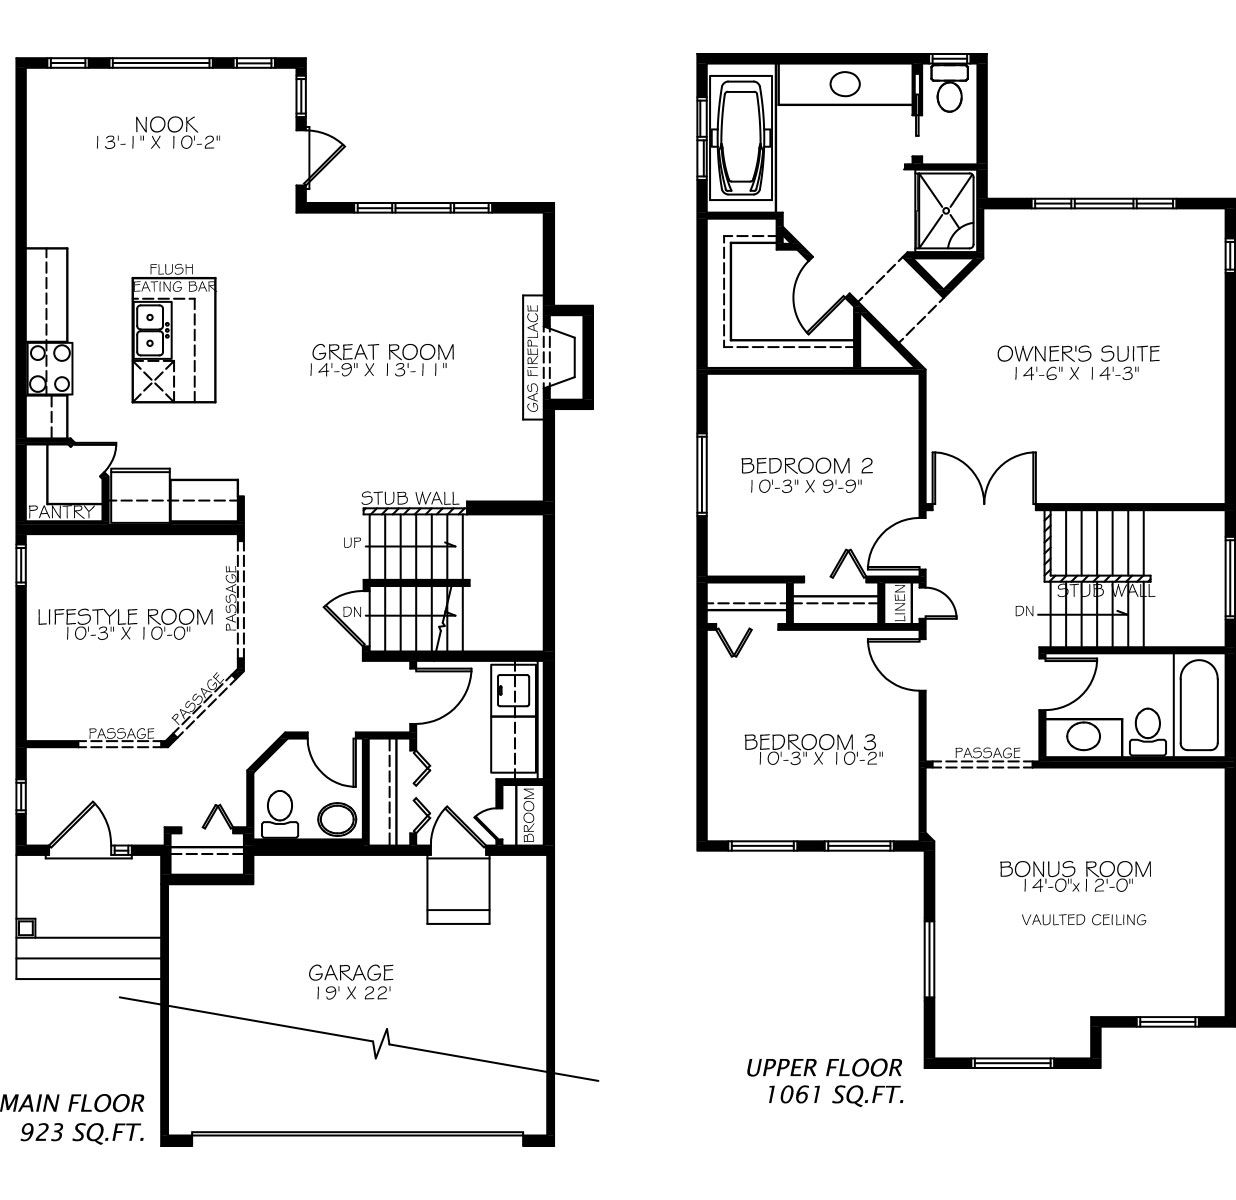 The best 100 edmonton home blueprints image collections maddy ii model floor plan pacesetter homes edmonton pacesetter homes maddyii front attached garage floorplan fave edmonton home blueprints malvernweather Images